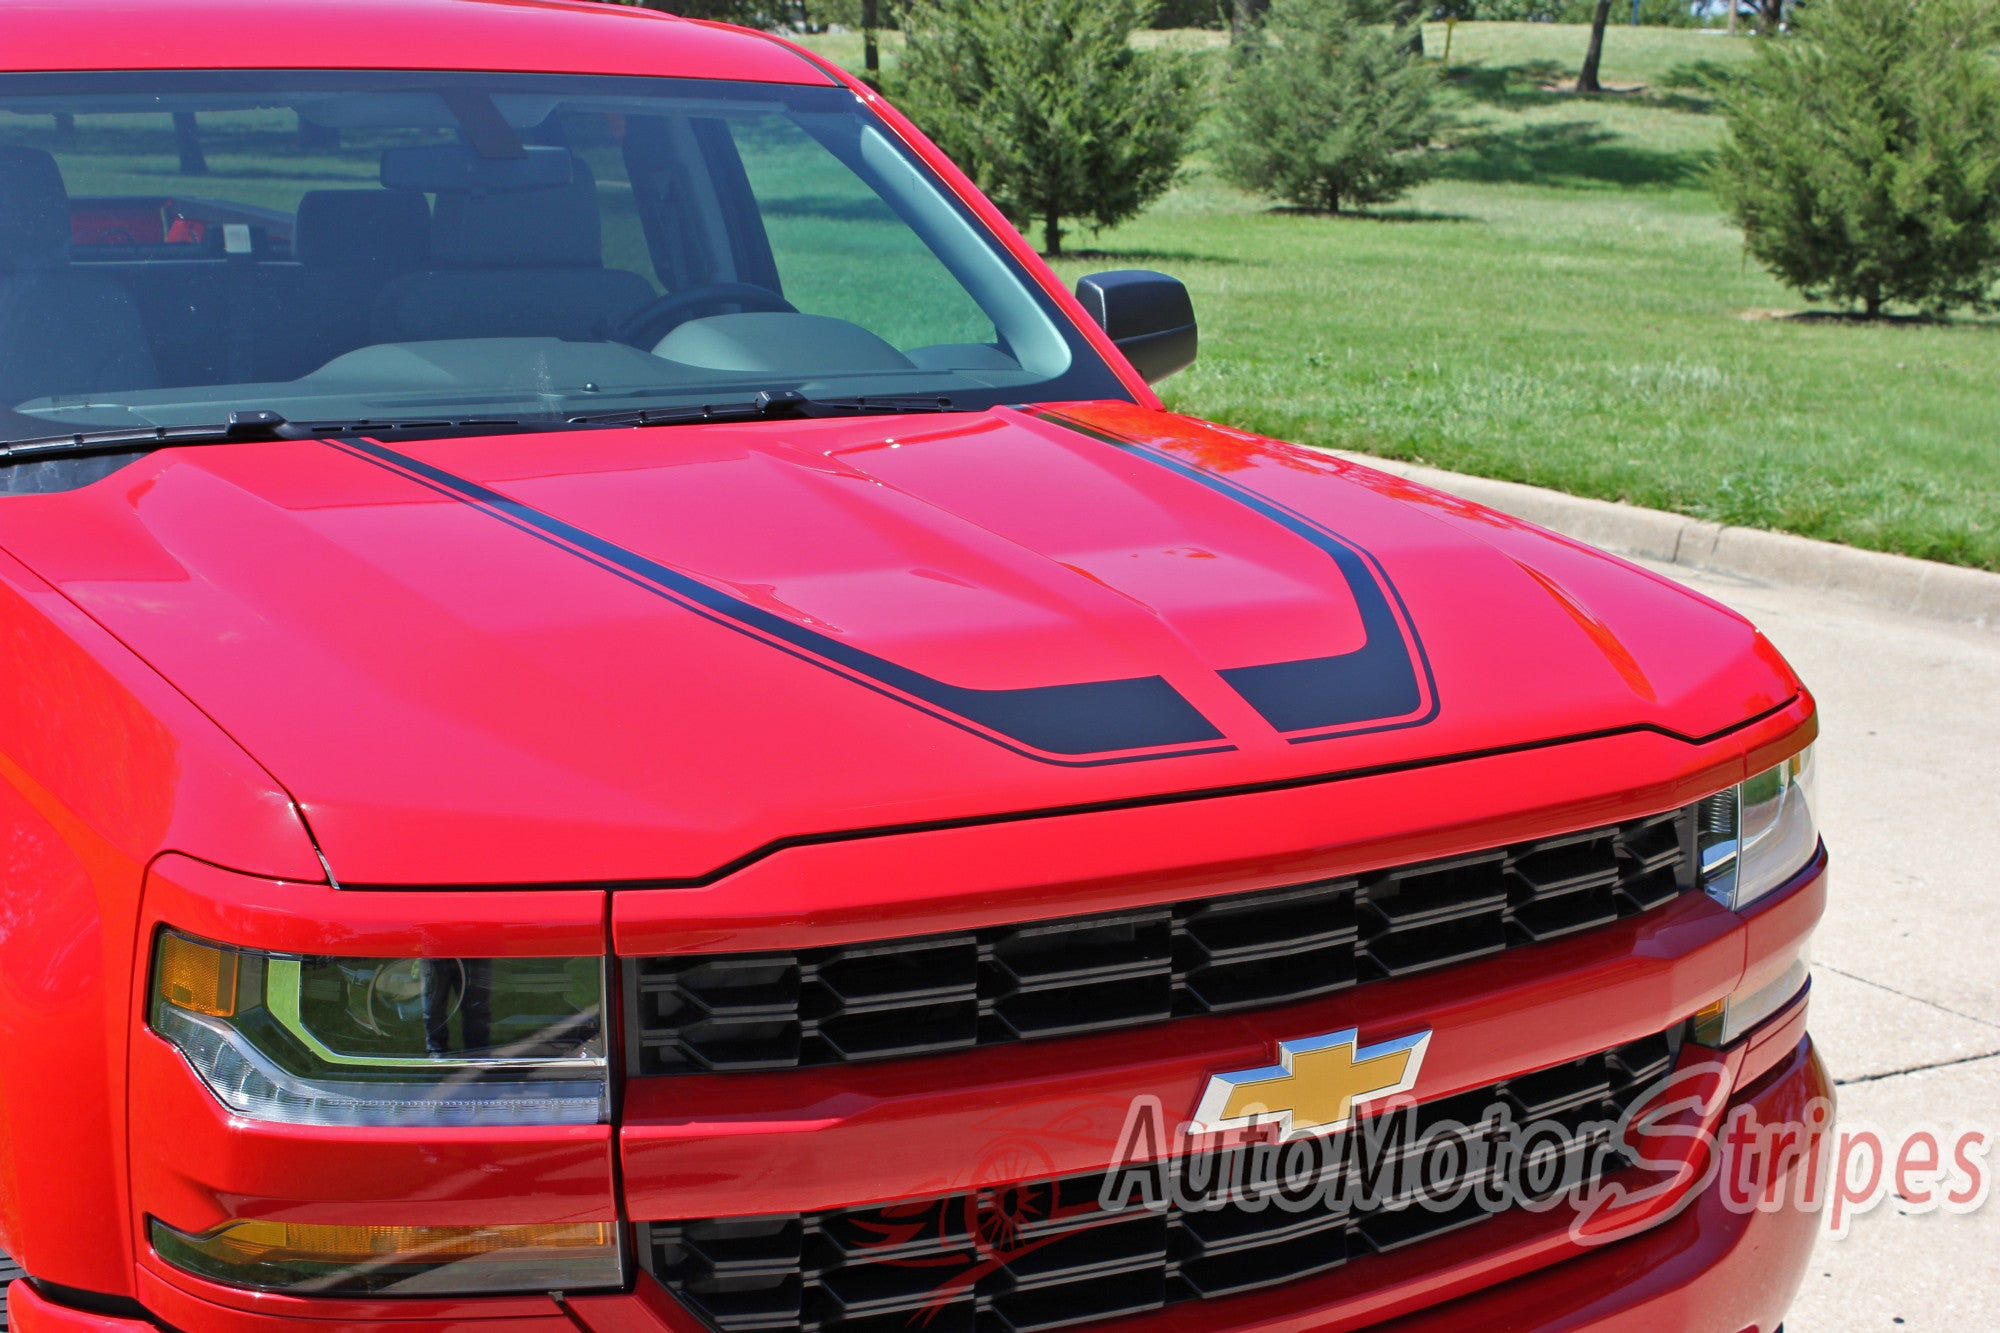 Chevy Silverado Door Stripes Flow Special Edition Truck - Chevy windshield decals trucks